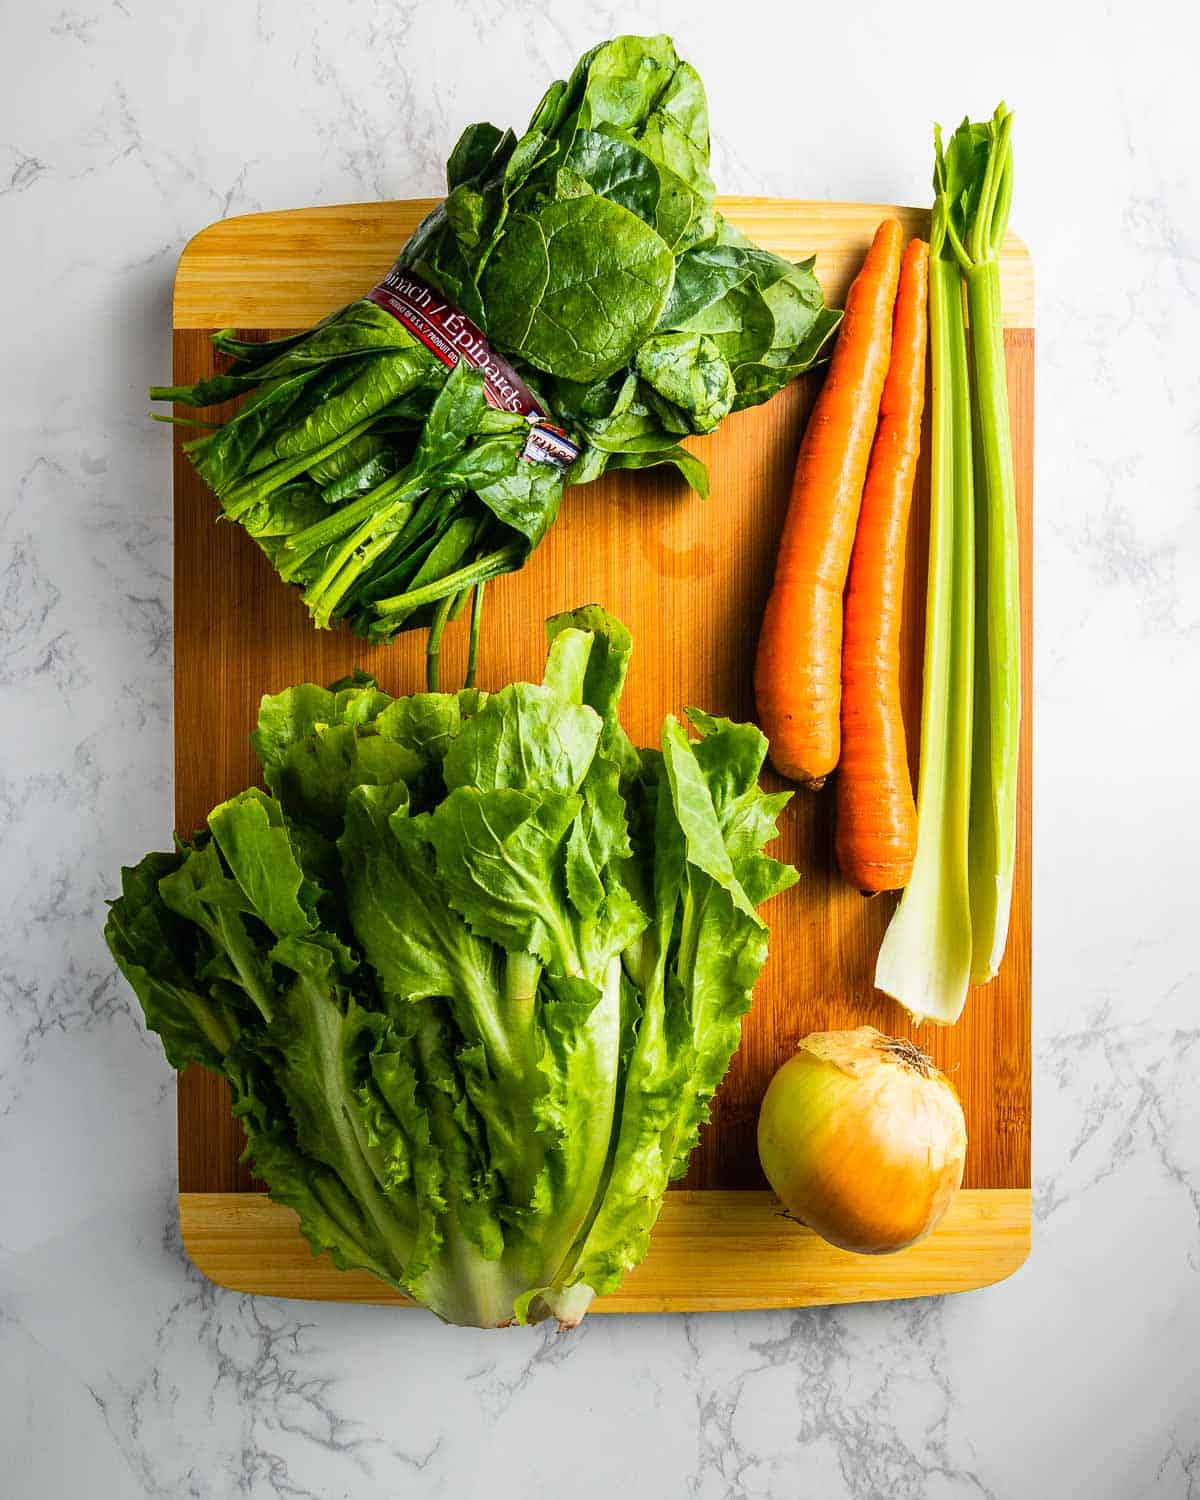 Escarole, spinach, carrots, onion, and celery on cutting board.